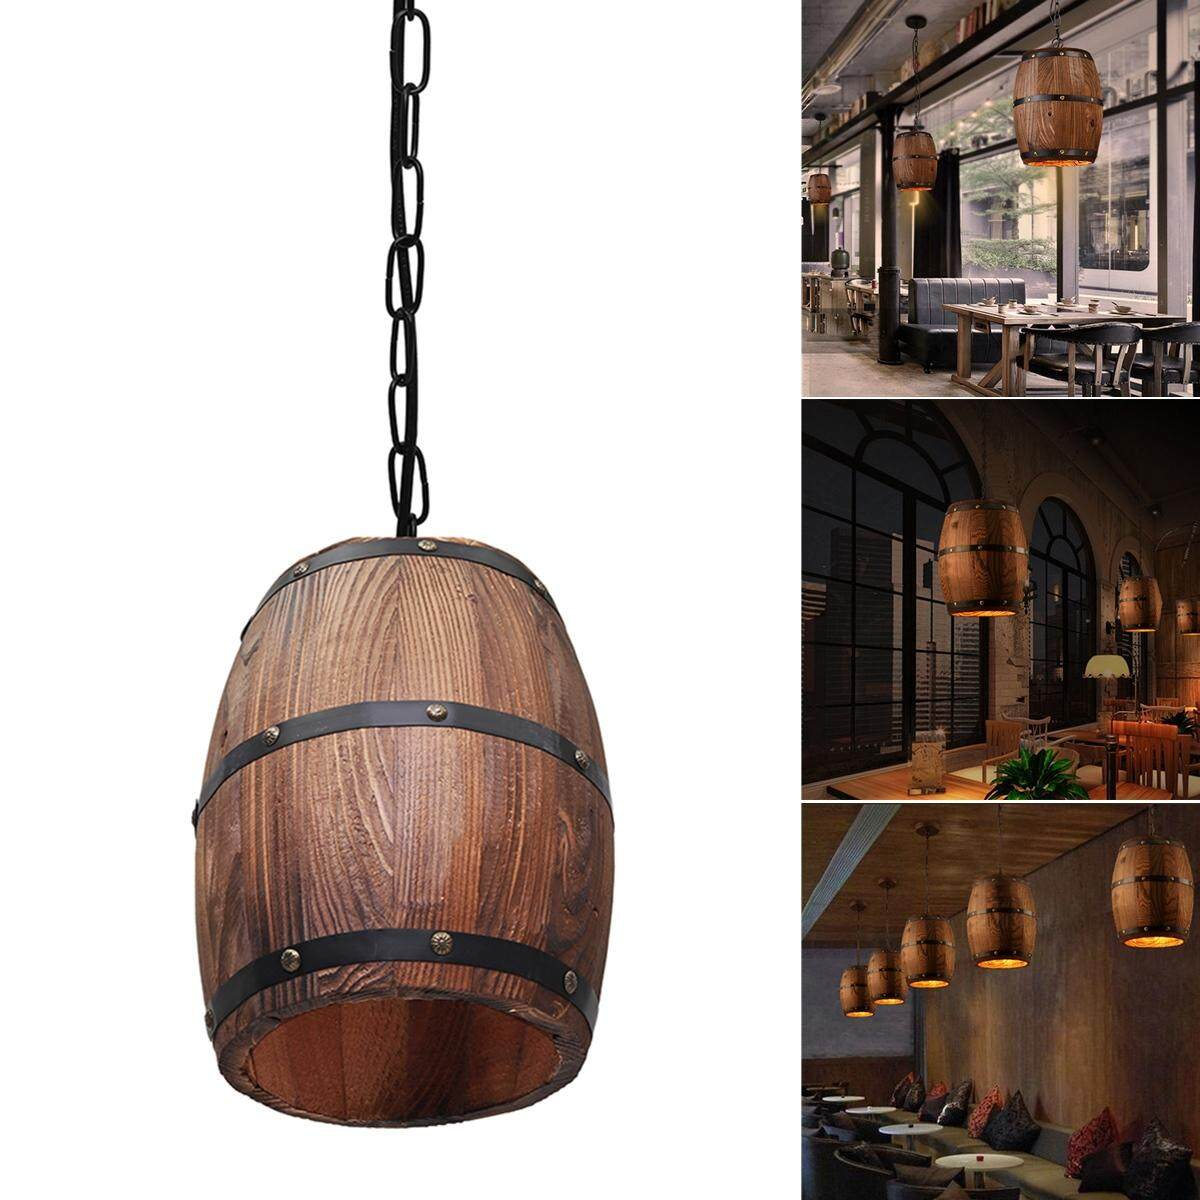 Wood Wine Barrel Hanging Fixture Ceiling Pendant Lamp Lighting Deco Bar Light Bar Cafe Light Wood Wine Barrel Hanging Light Loft Ceiling Pendant Lamp